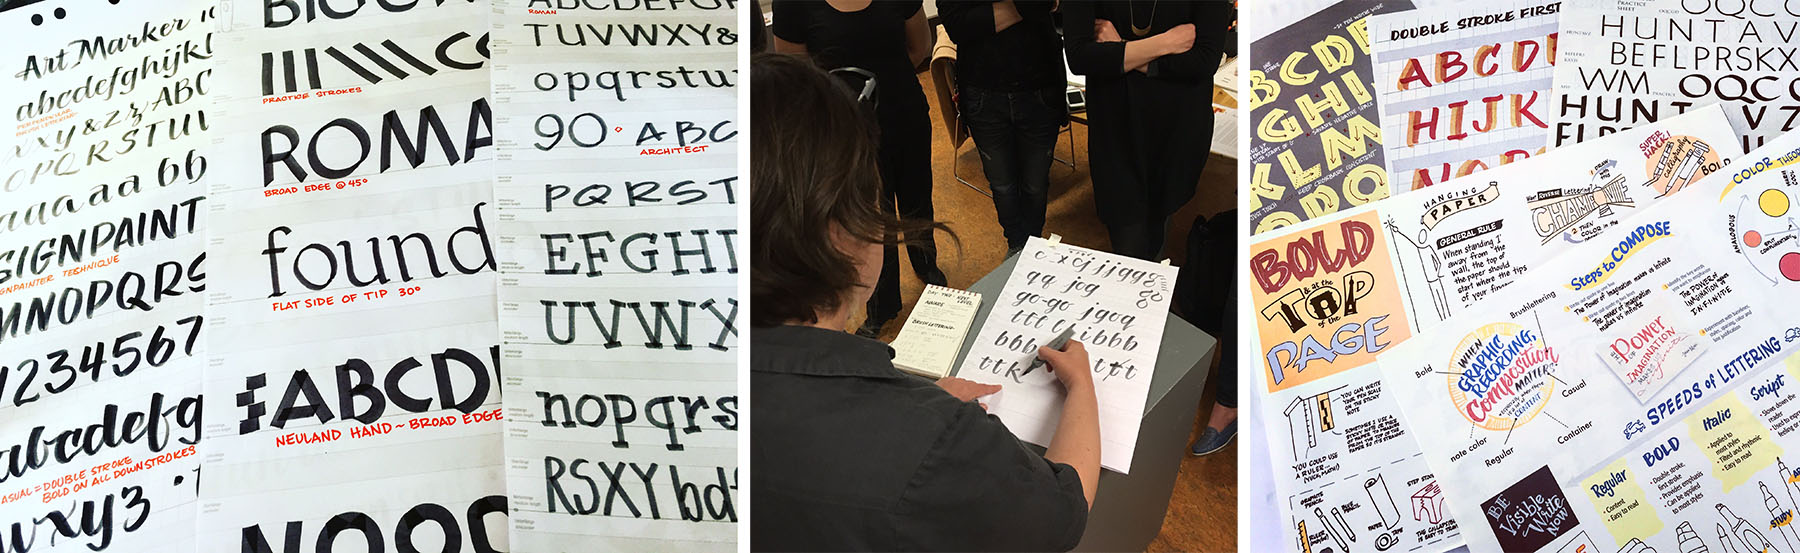 Exemplars, Instruction of brush lettering (photo by Sam Bradd), and handouts from workshops